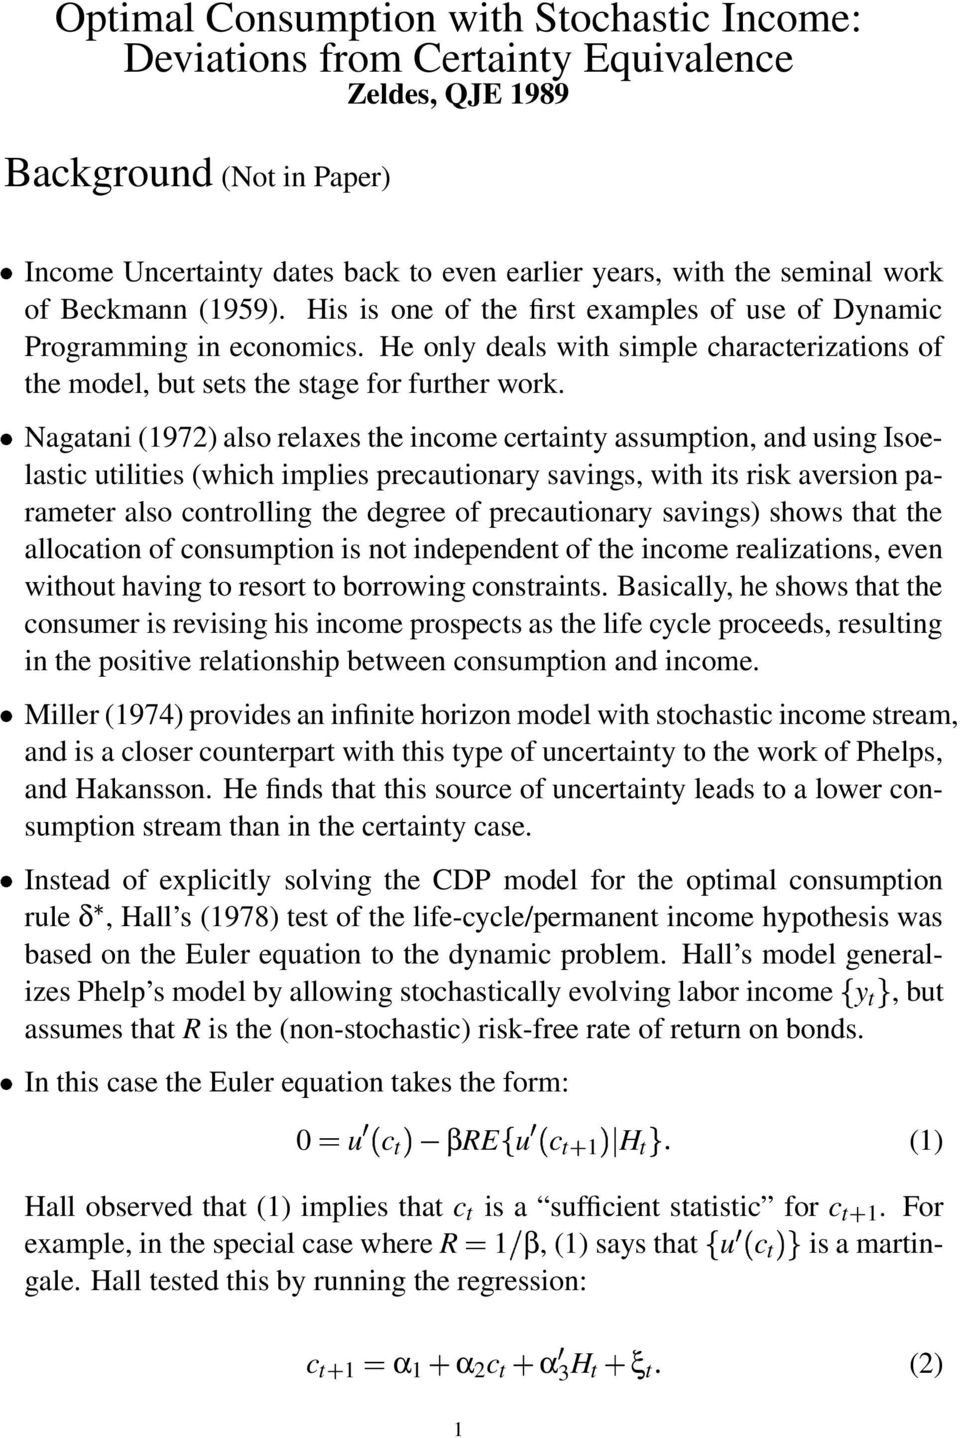 Nagatani (1972) also relaxes the income certainty assumption, and using Isoelastic utilities (which implies precautionary savings, with its risk aversion parameter also controlling the degree of